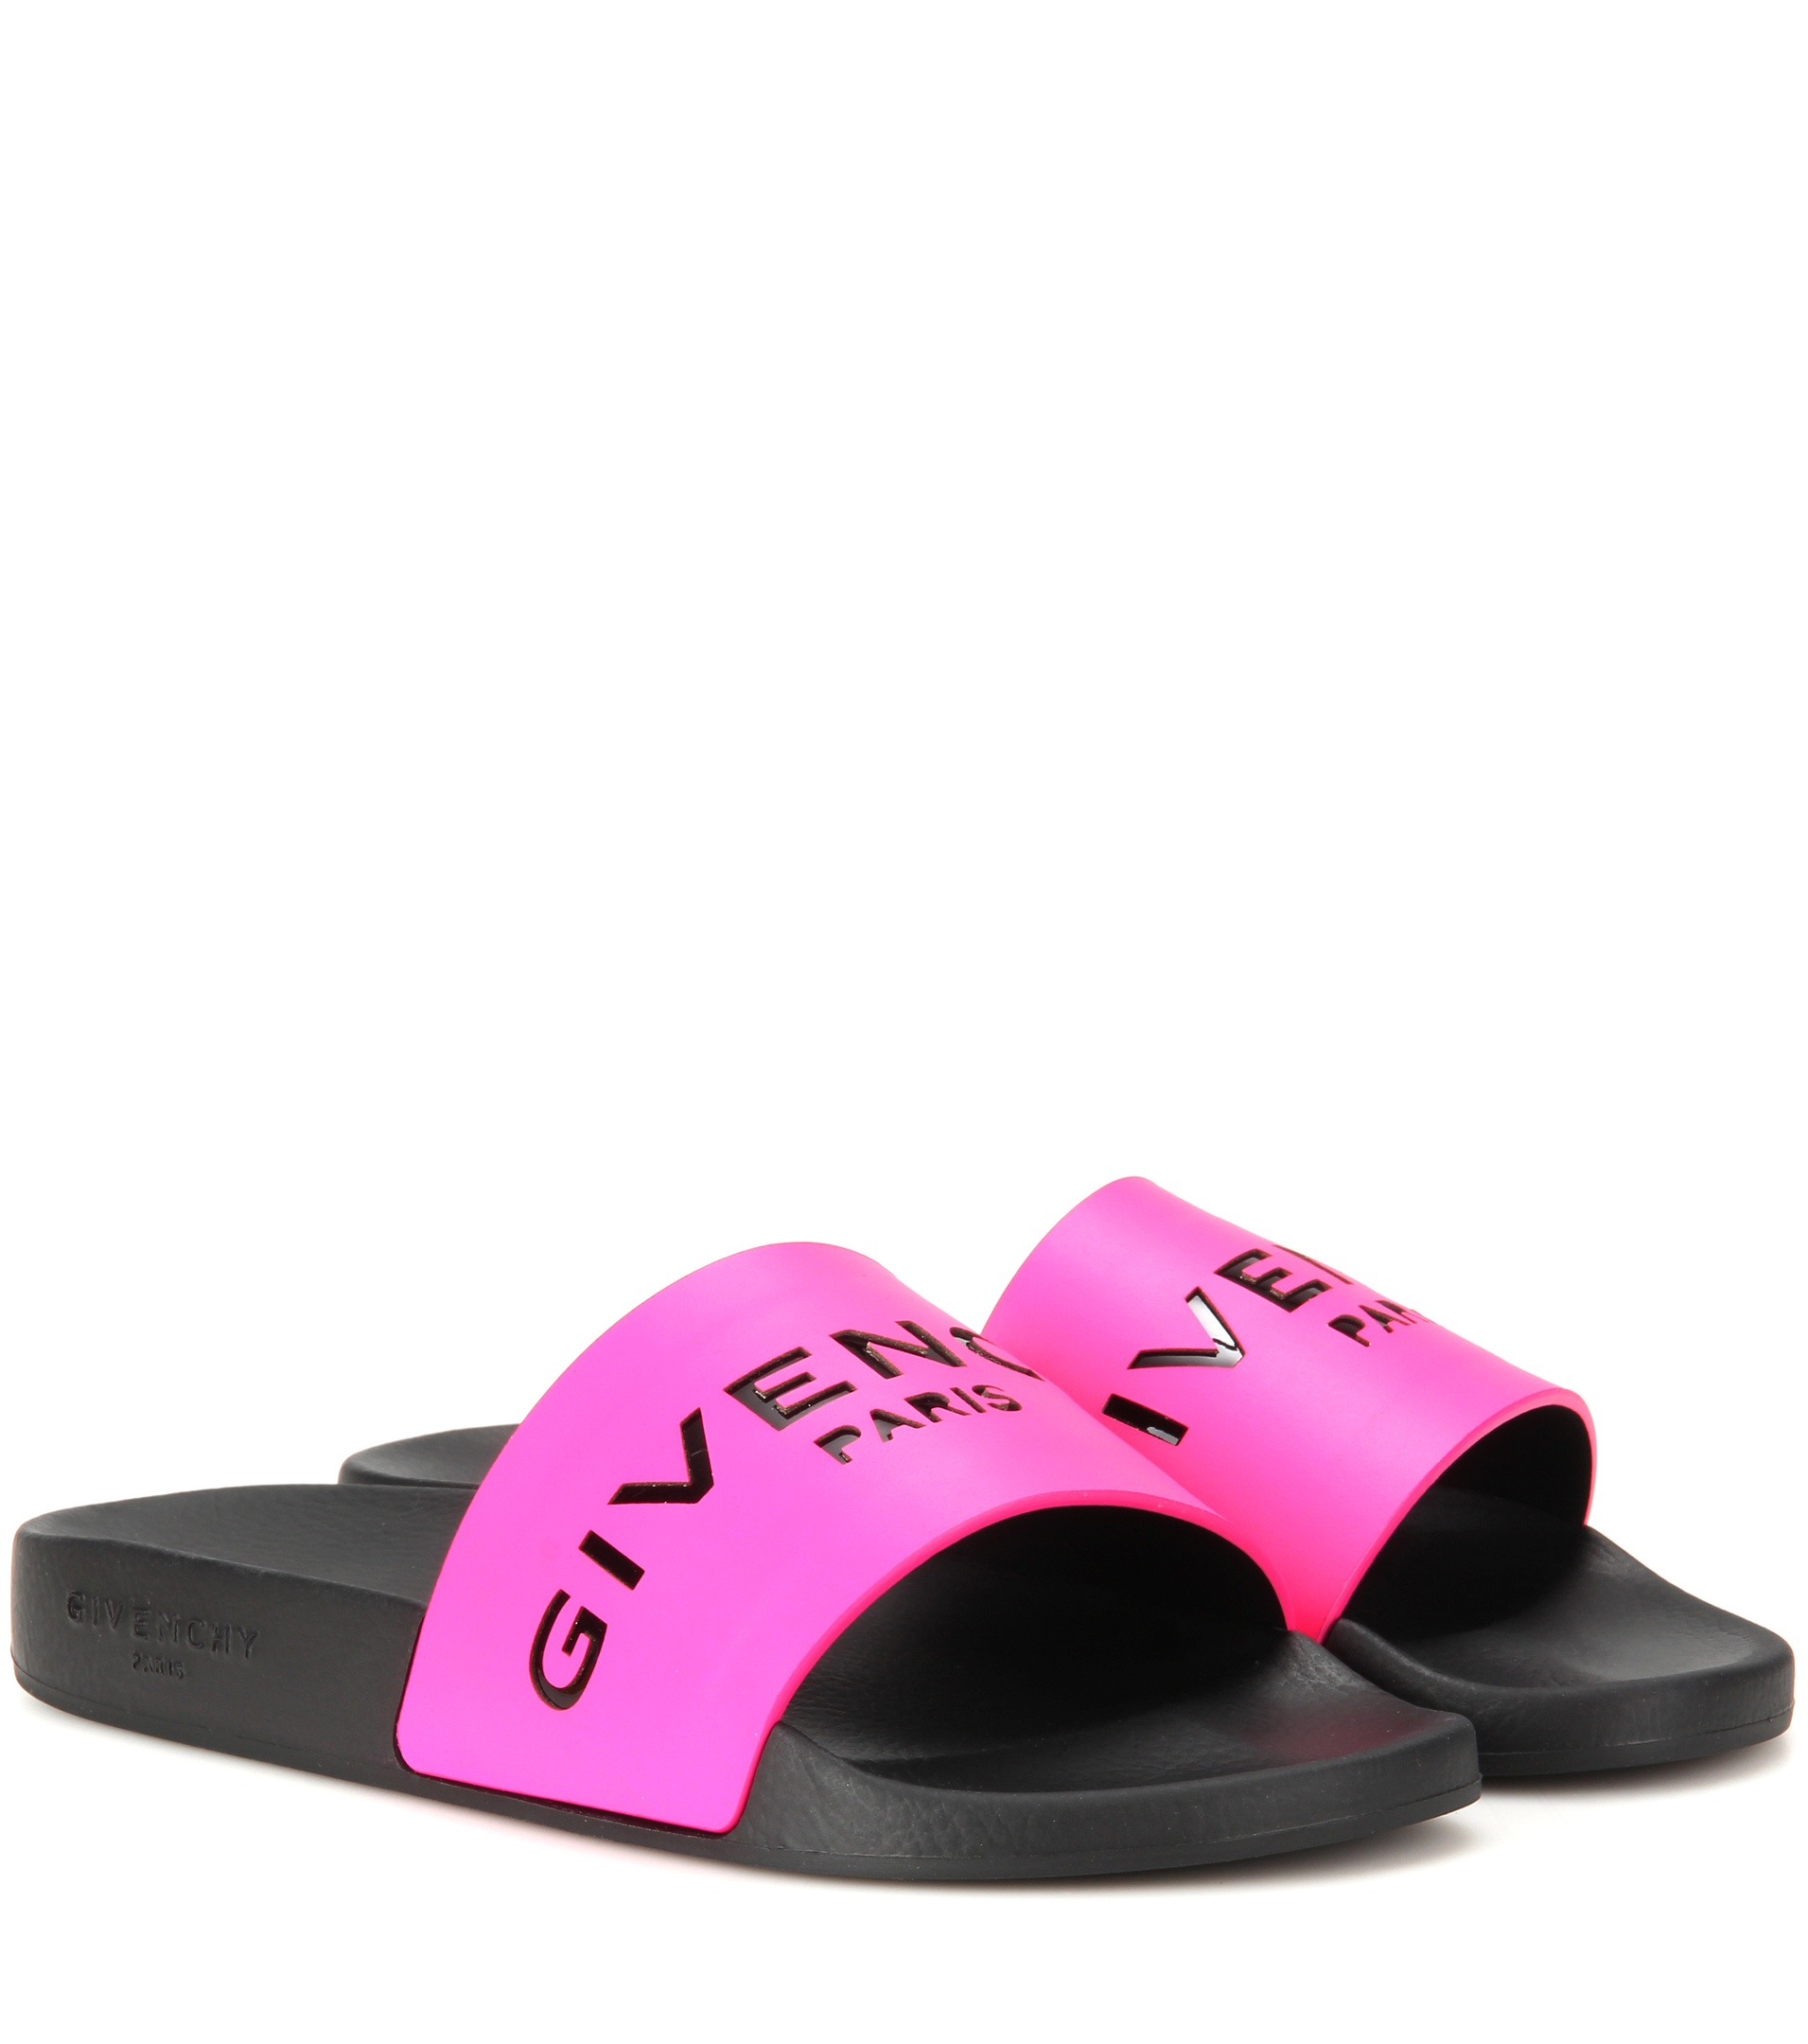 Givenchy Slide Leather And Rubber Sandals In Pink Lyst